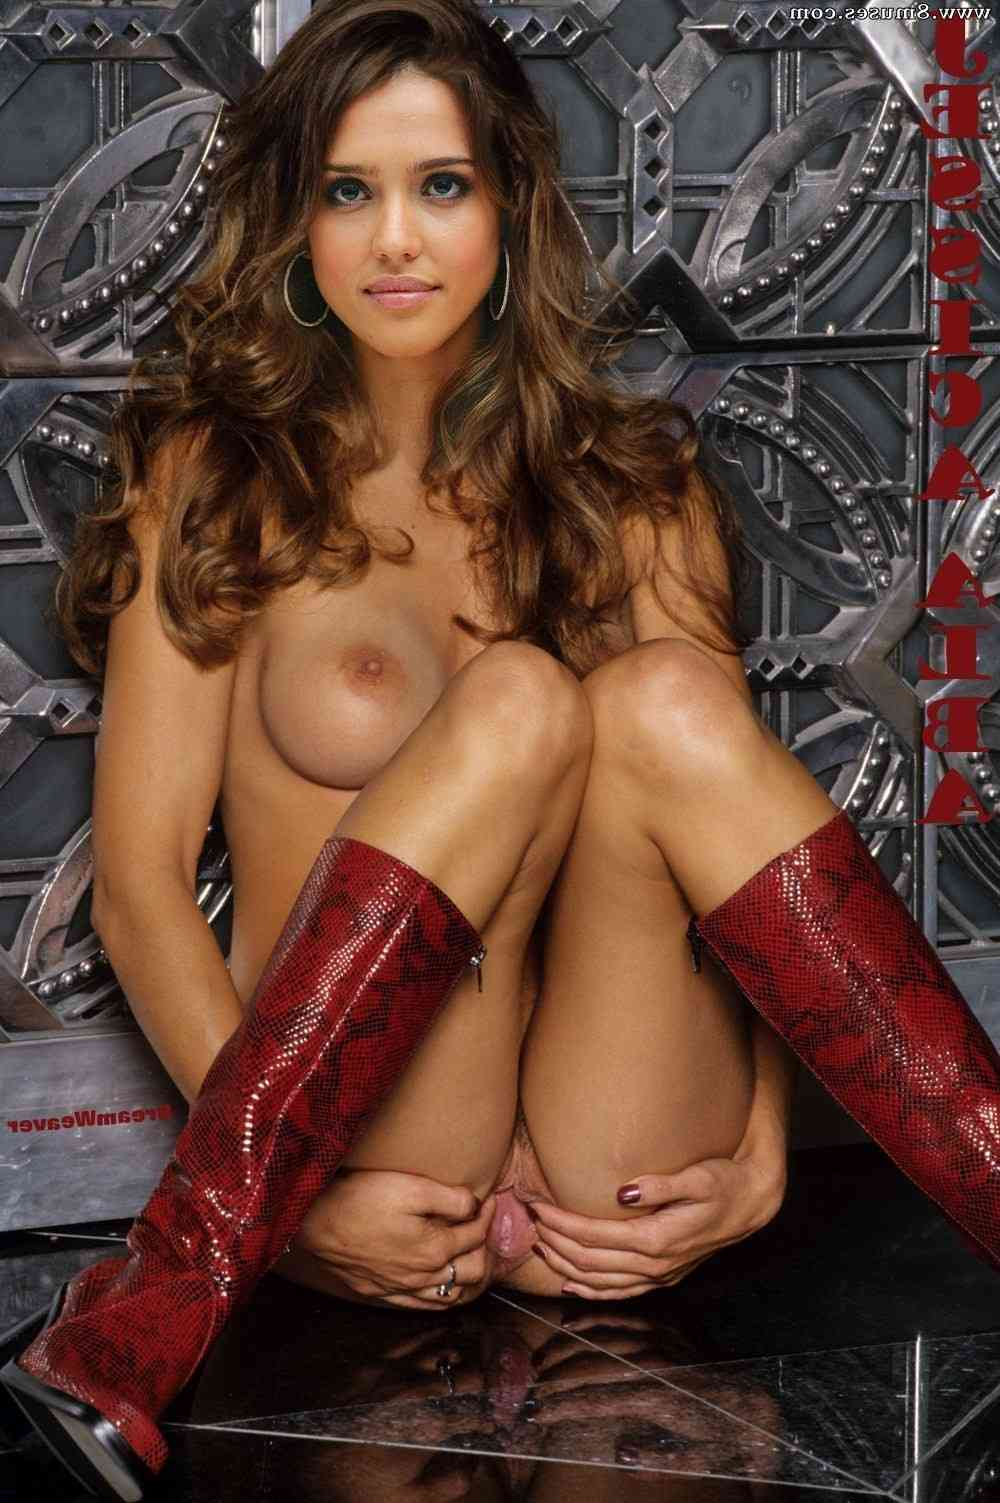 Fake-Celebrities-Sex-Pictures/Jessica-Alba Jessica_Alba__8muses_-_Sex_and_Porn_Comics_453.jpg